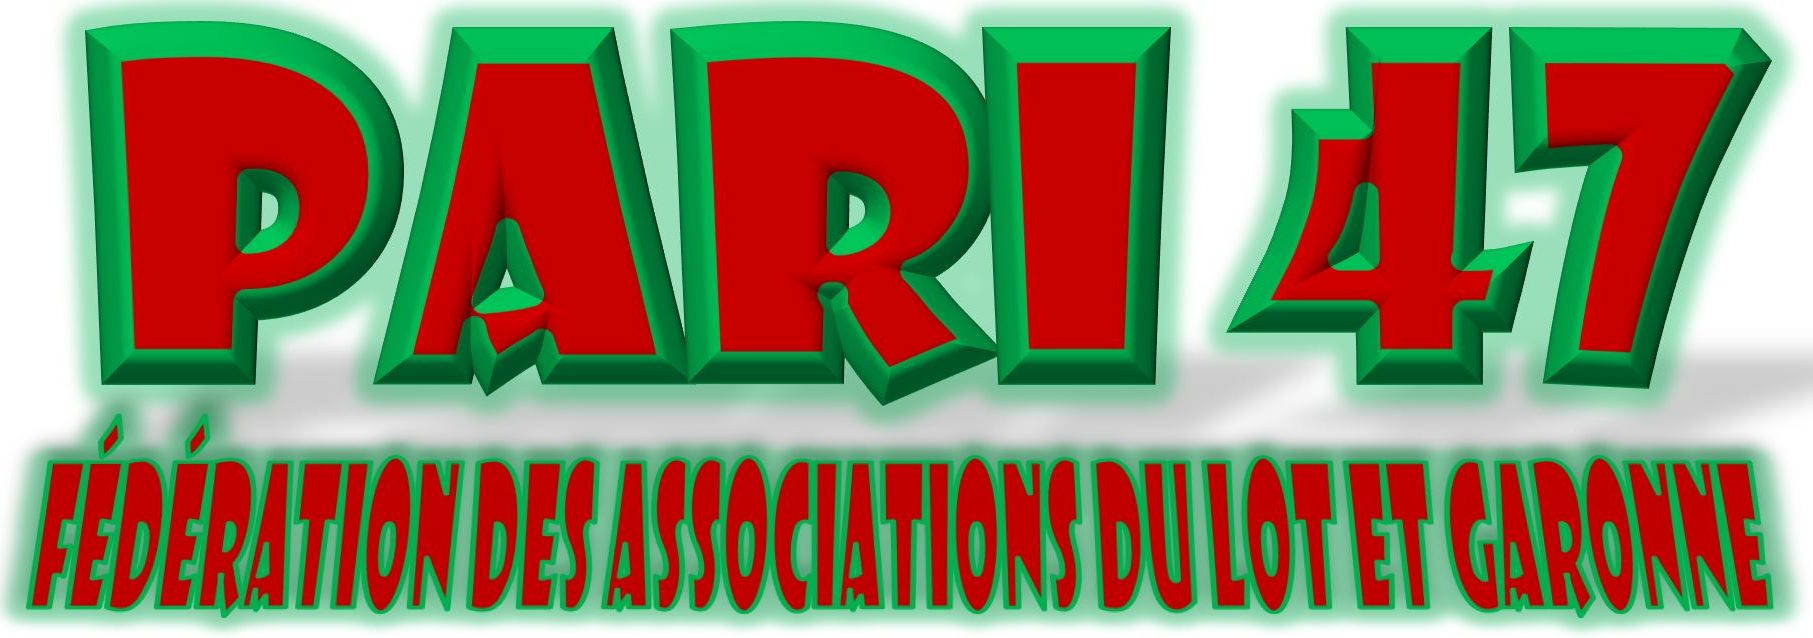 Pari47 – Federation des Associations du Lot et Garonne